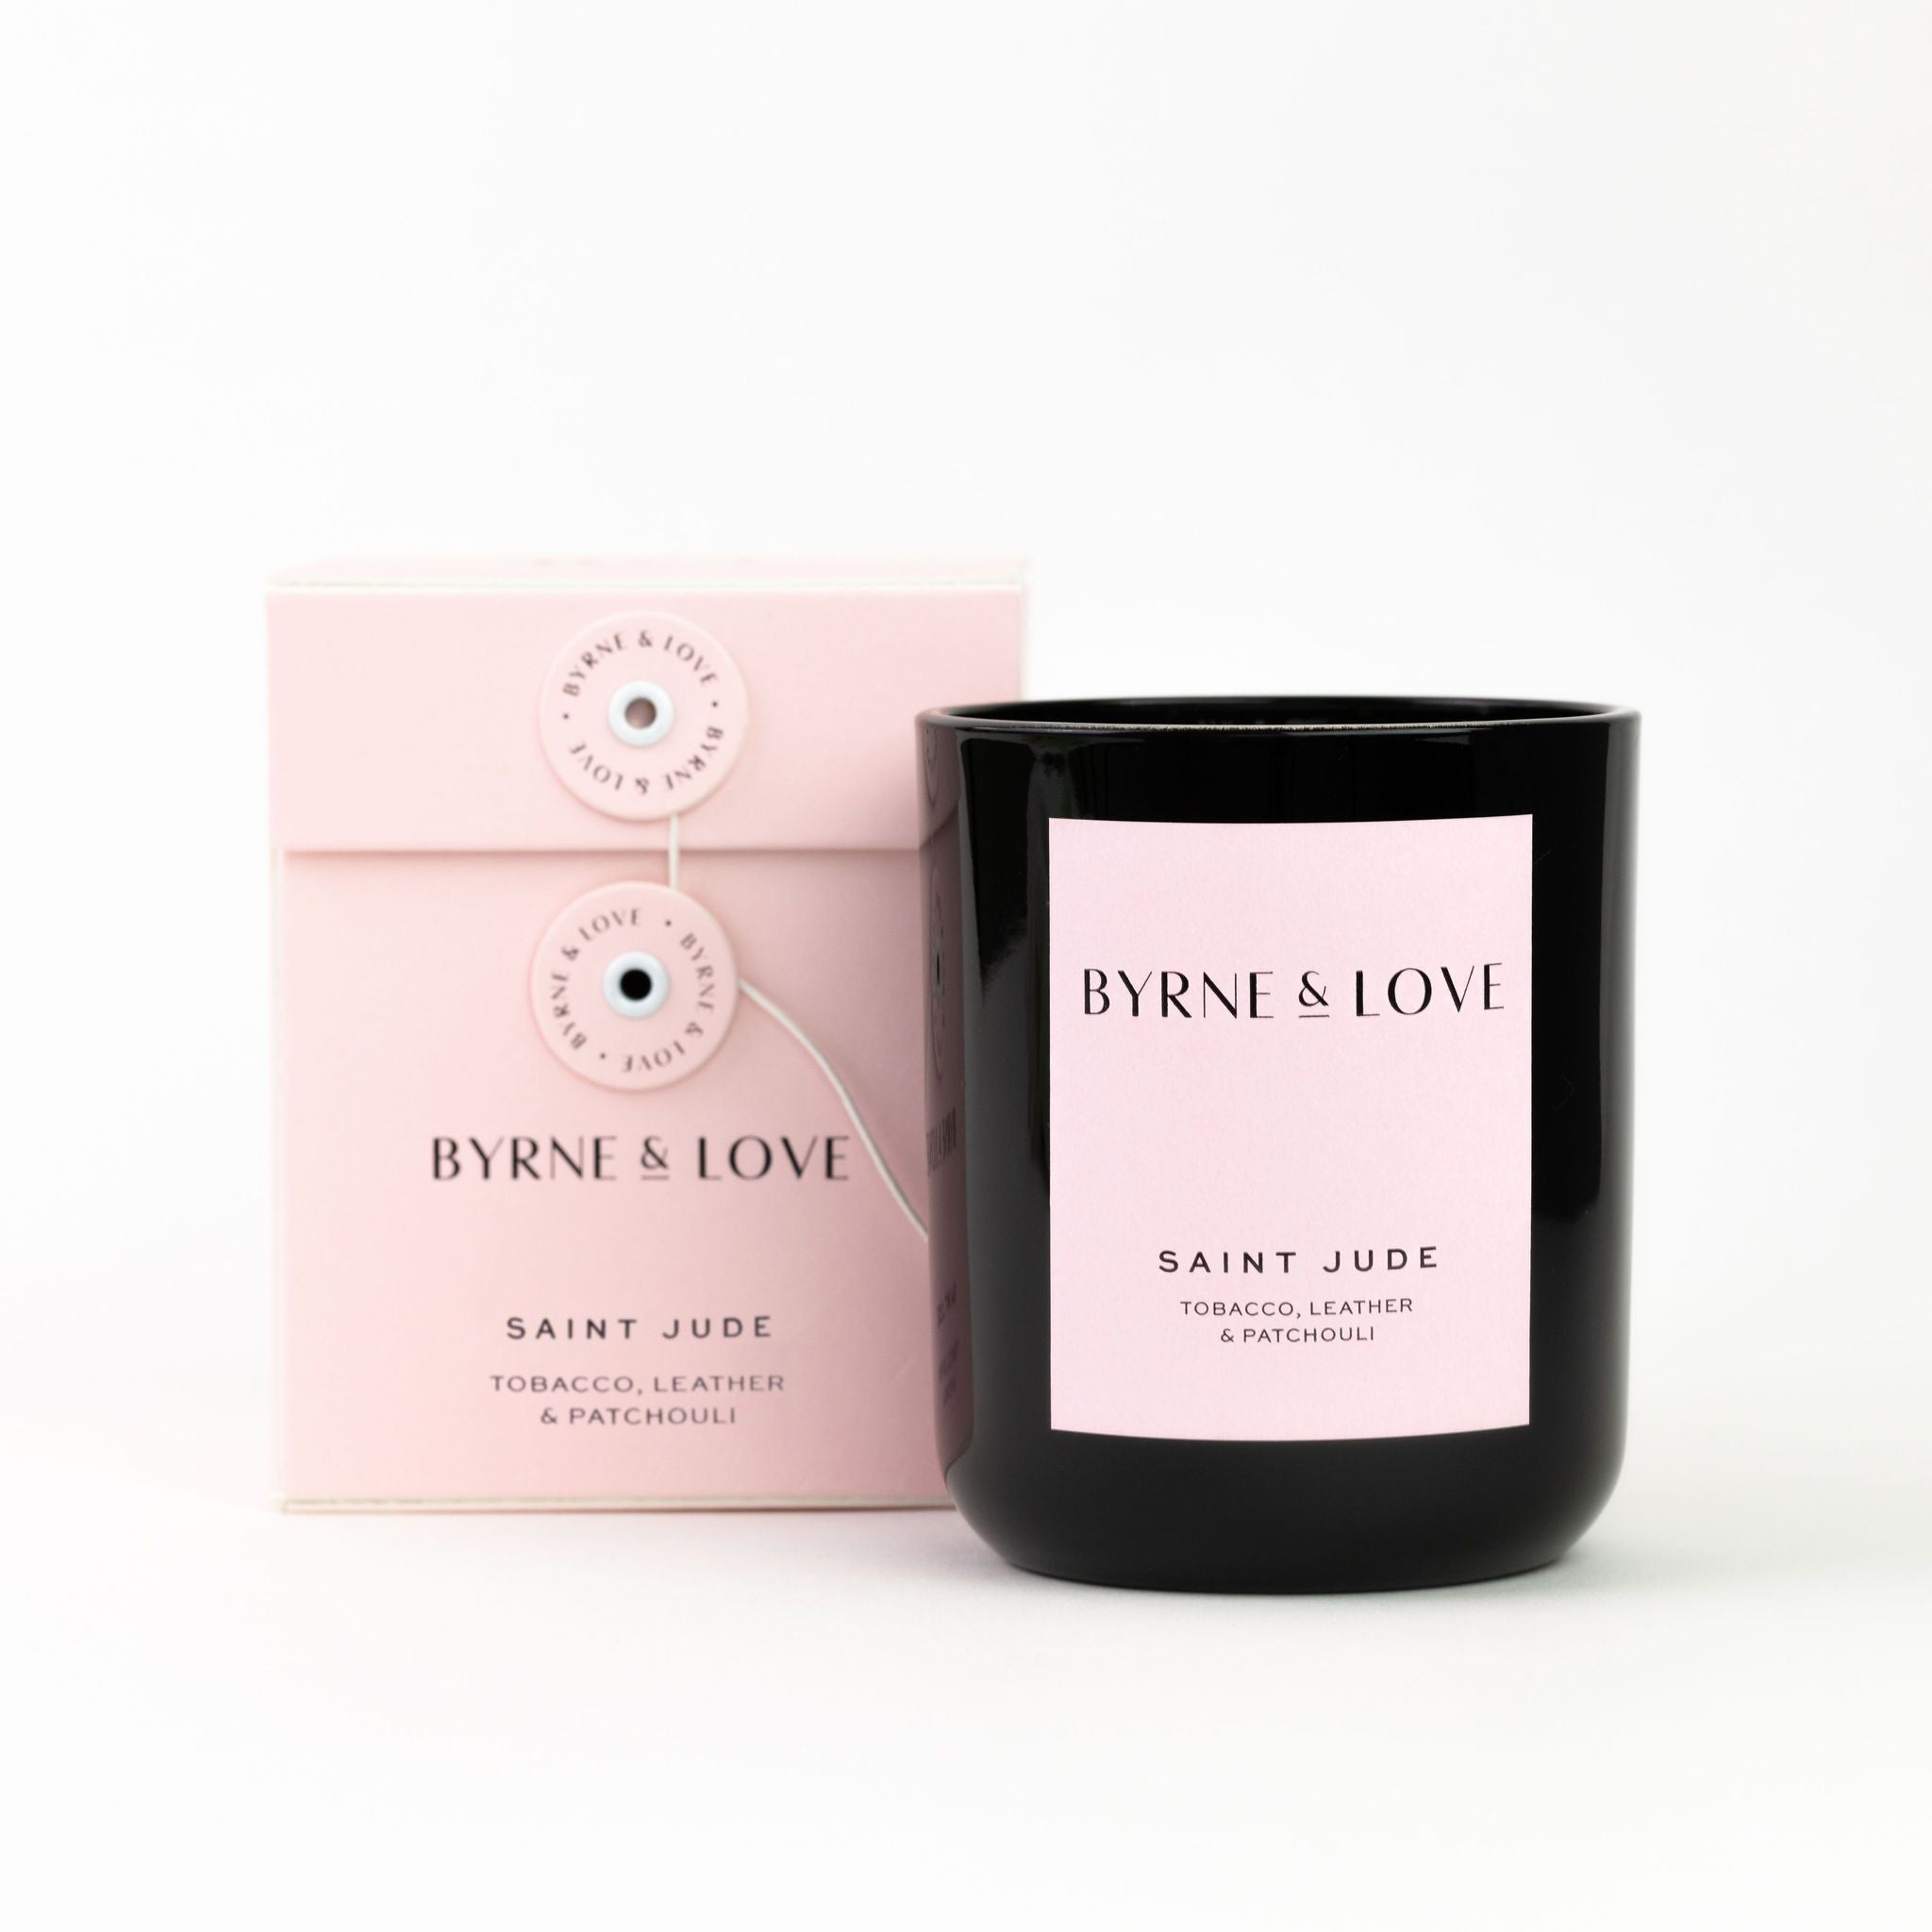 Byrne & Love Candle